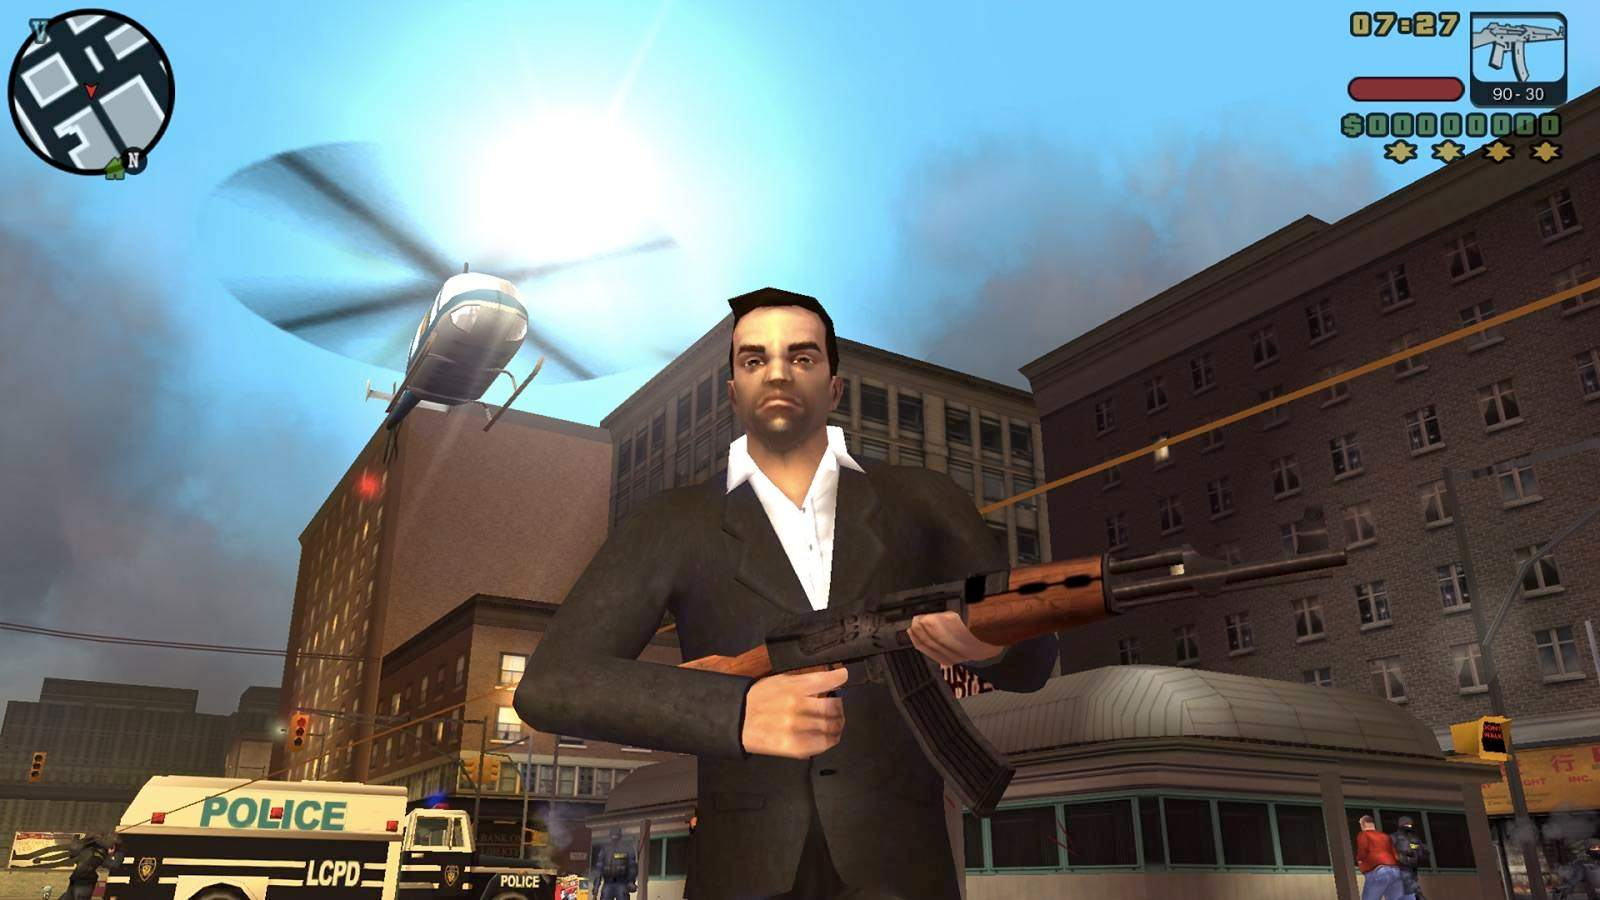 Discover How To Get Money In GTA: Liberty City Stories